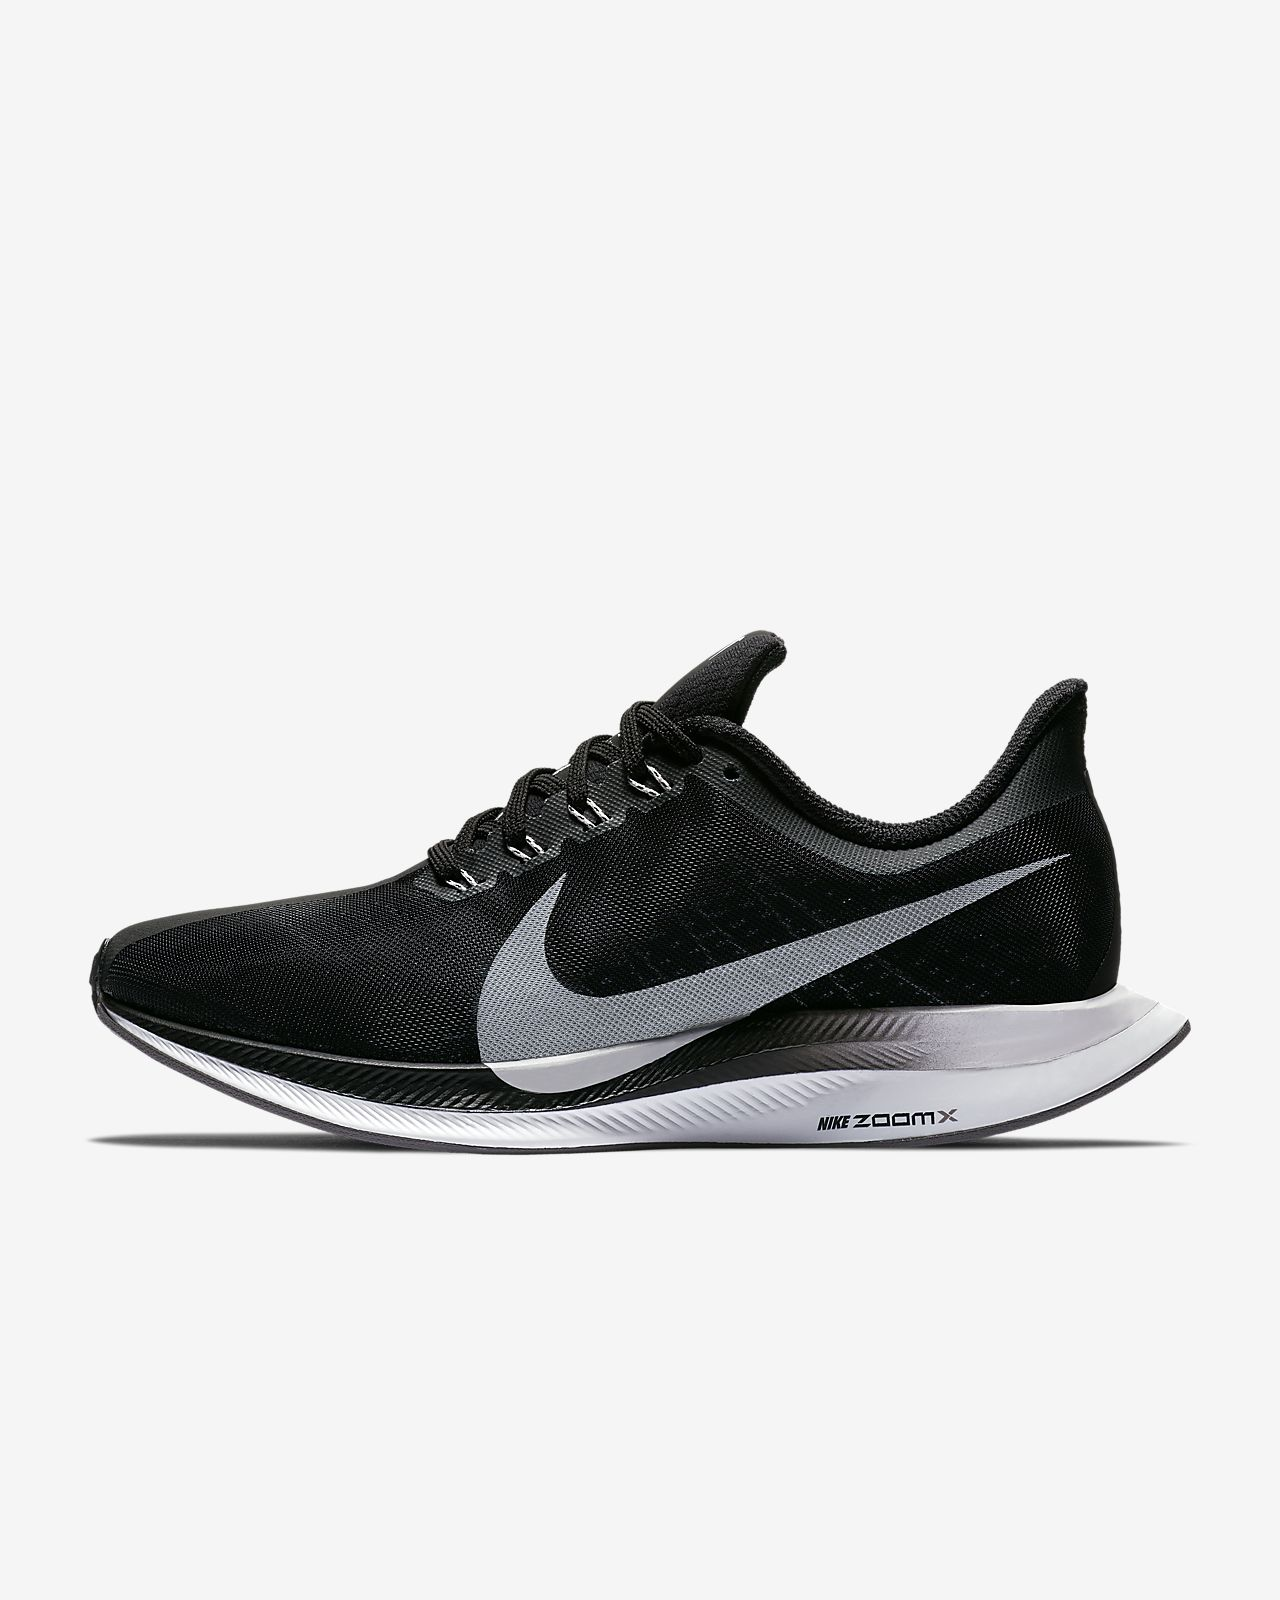 best service 66c28 5928f Women s Running Shoe. Nike Zoom Pegasus Turbo